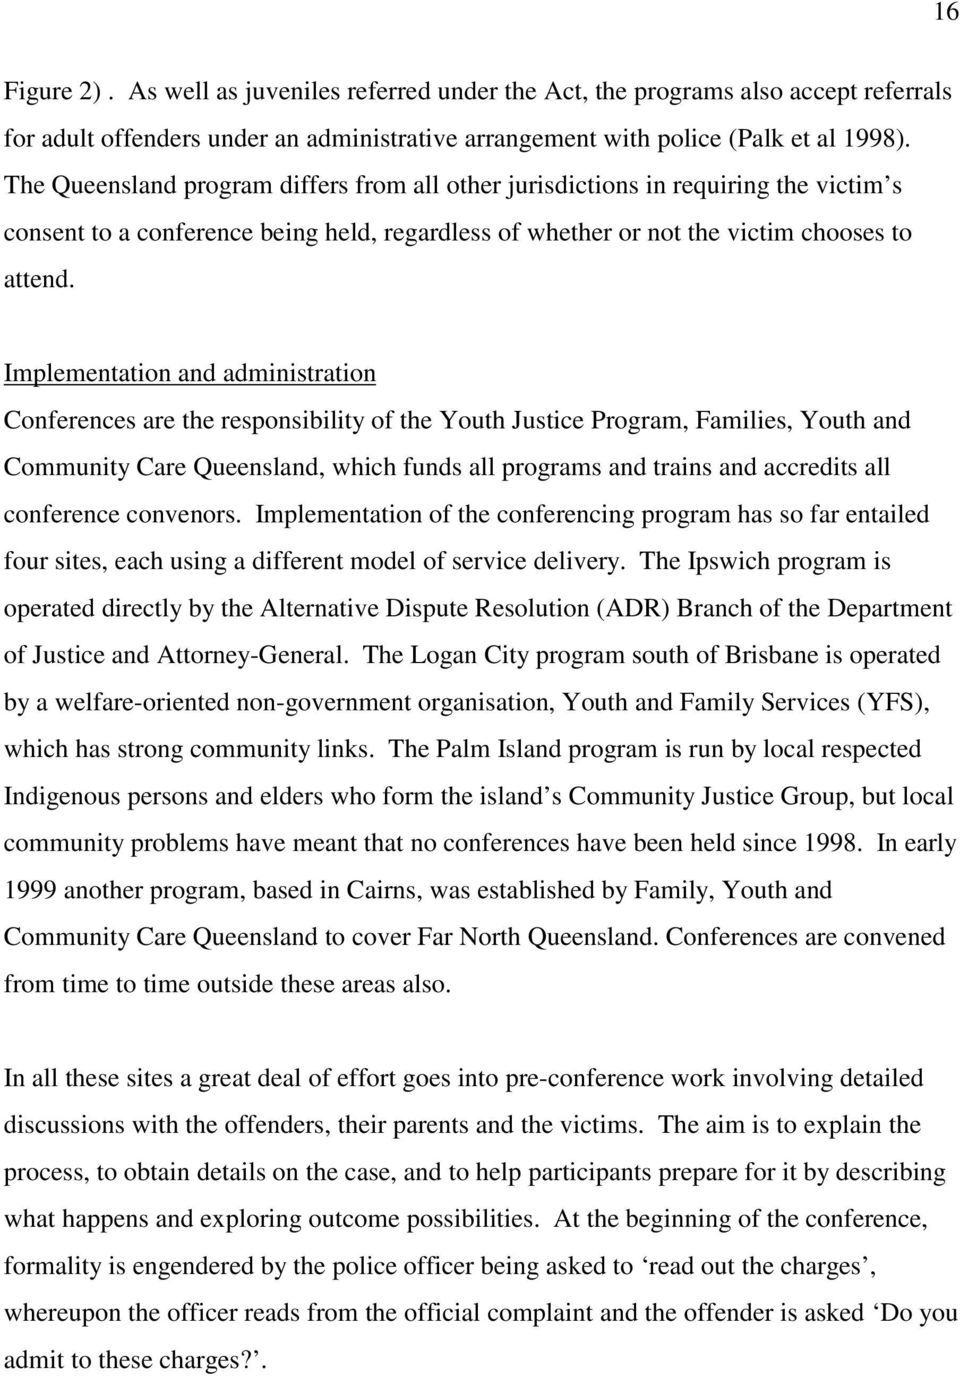 Implementation and administration Conferences are the responsibility of the Youth Justice Program, Families, Youth and Community Care Queensland, which funds all programs and trains and accredits all